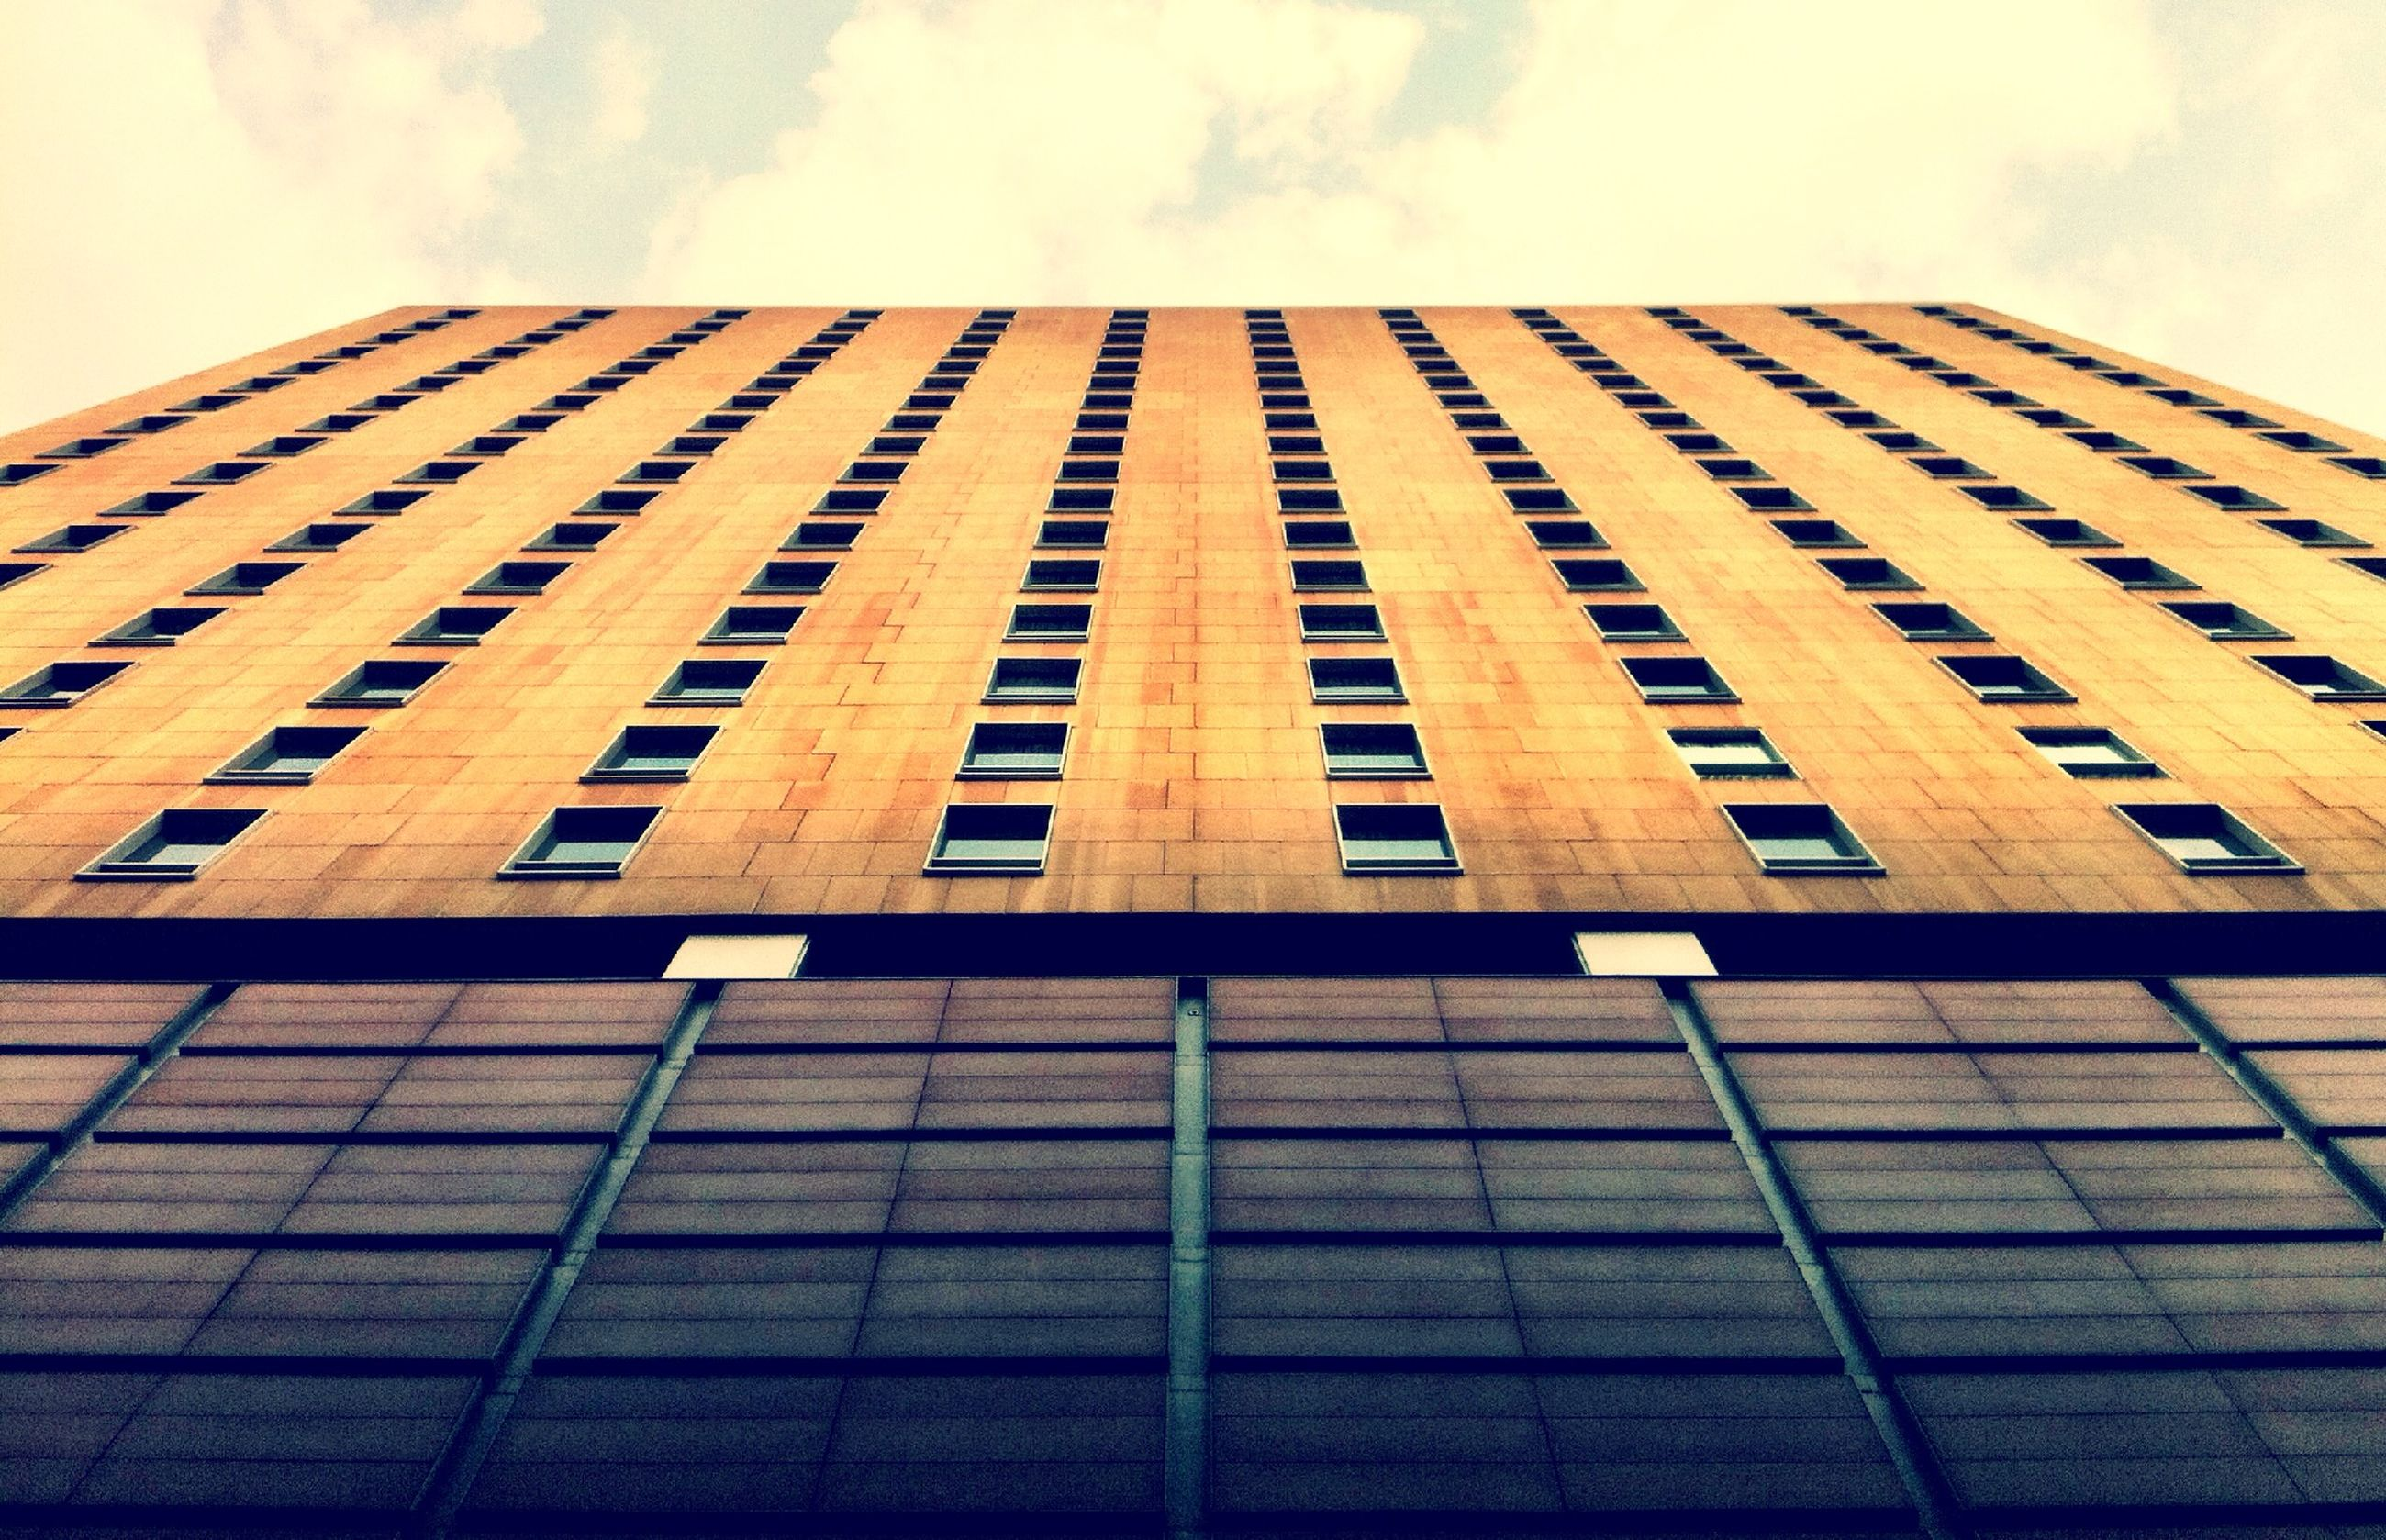 architecture, building exterior, built structure, low angle view, sky, modern, office building, building, glass - material, window, city, tall - high, reflection, cloud - sky, skyscraper, tower, day, pattern, outdoors, no people